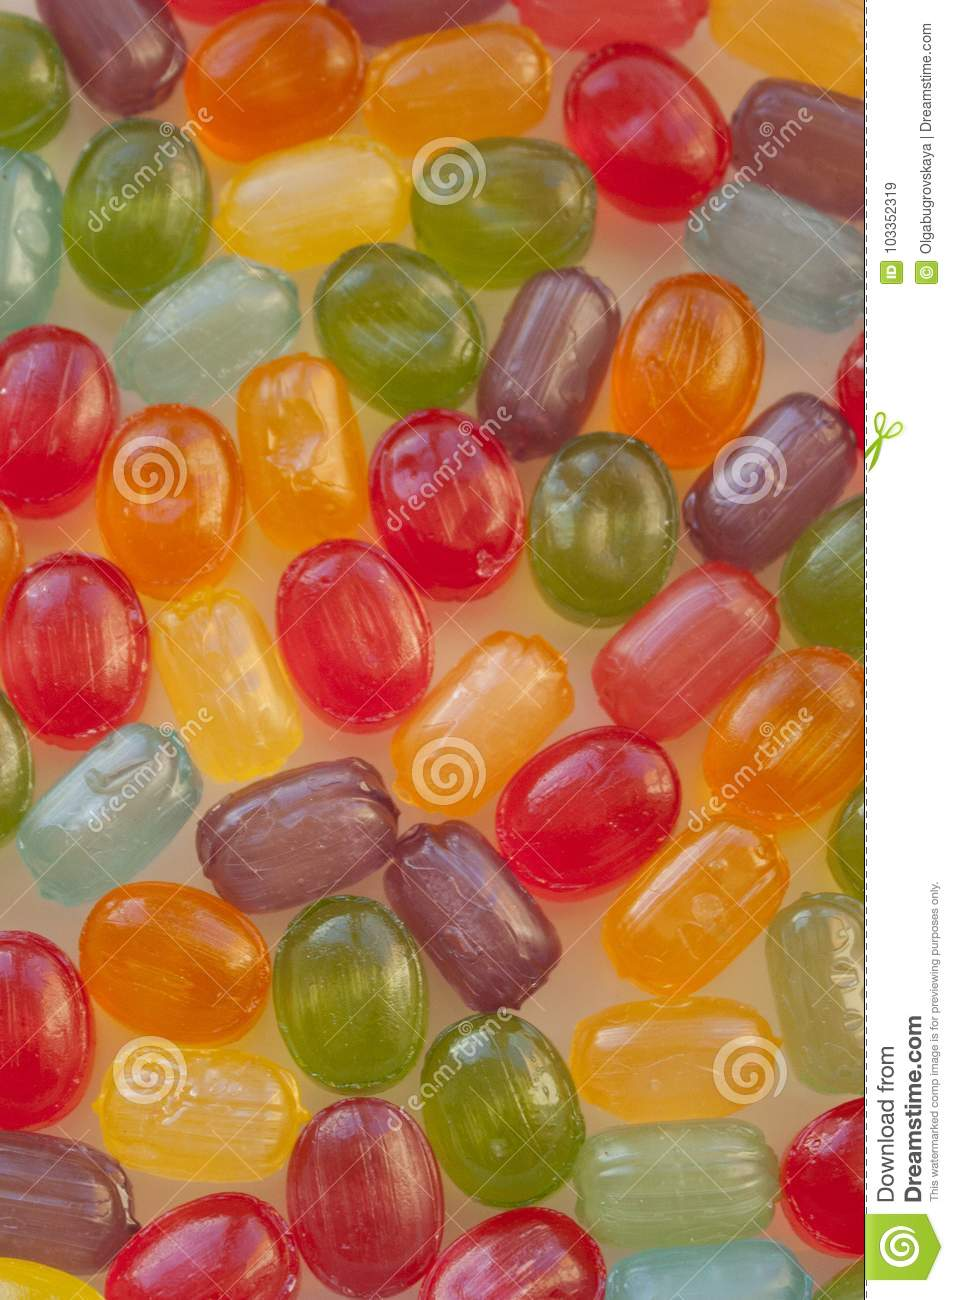 colorful small candies lollipops background wallpaper field stock